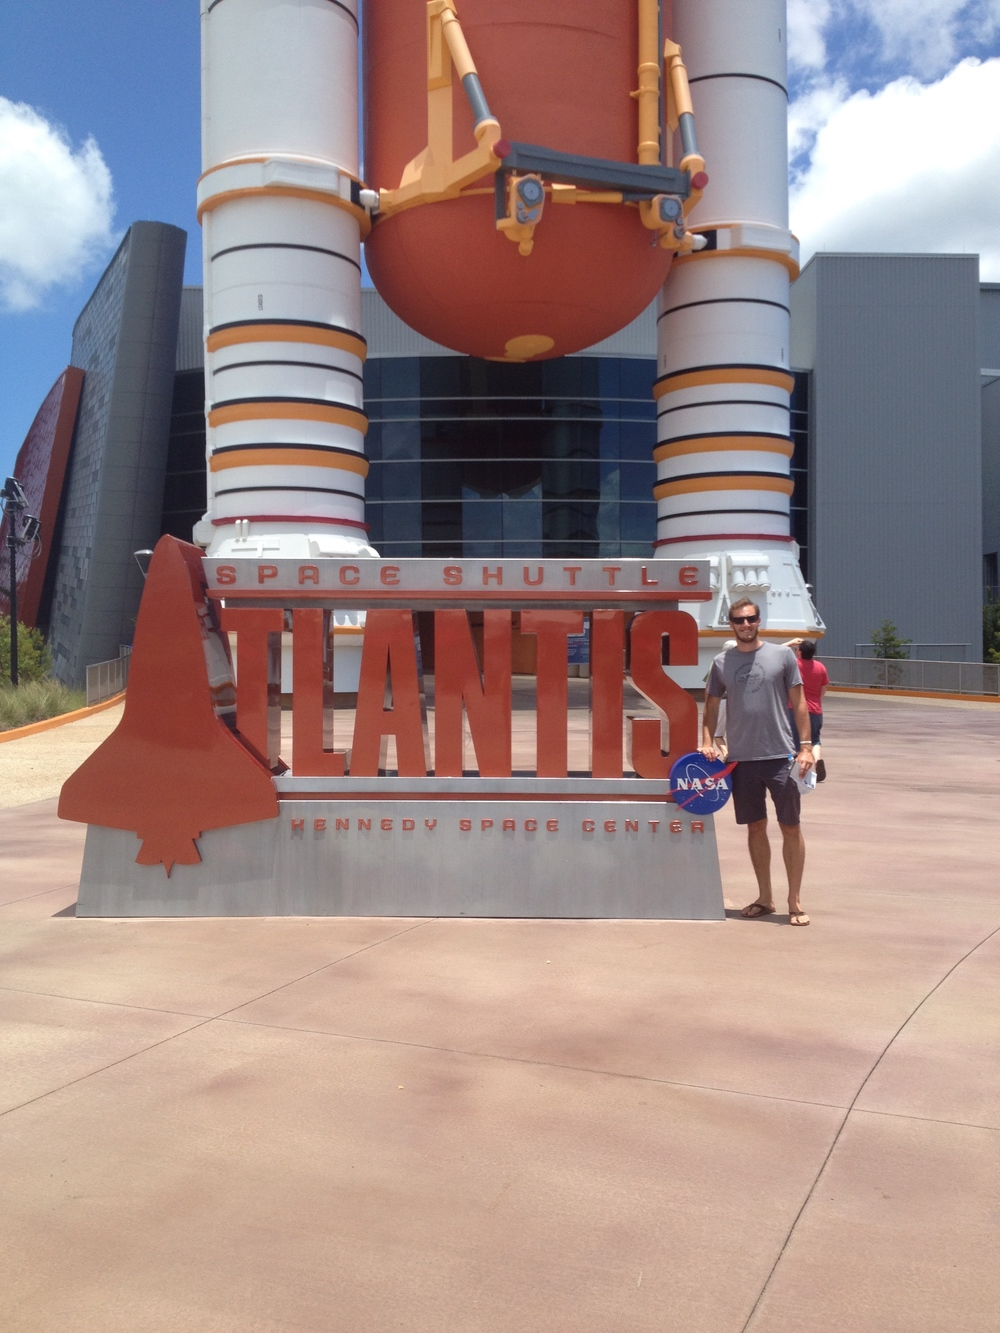 Excited to see the Atlantis Space Shuttle